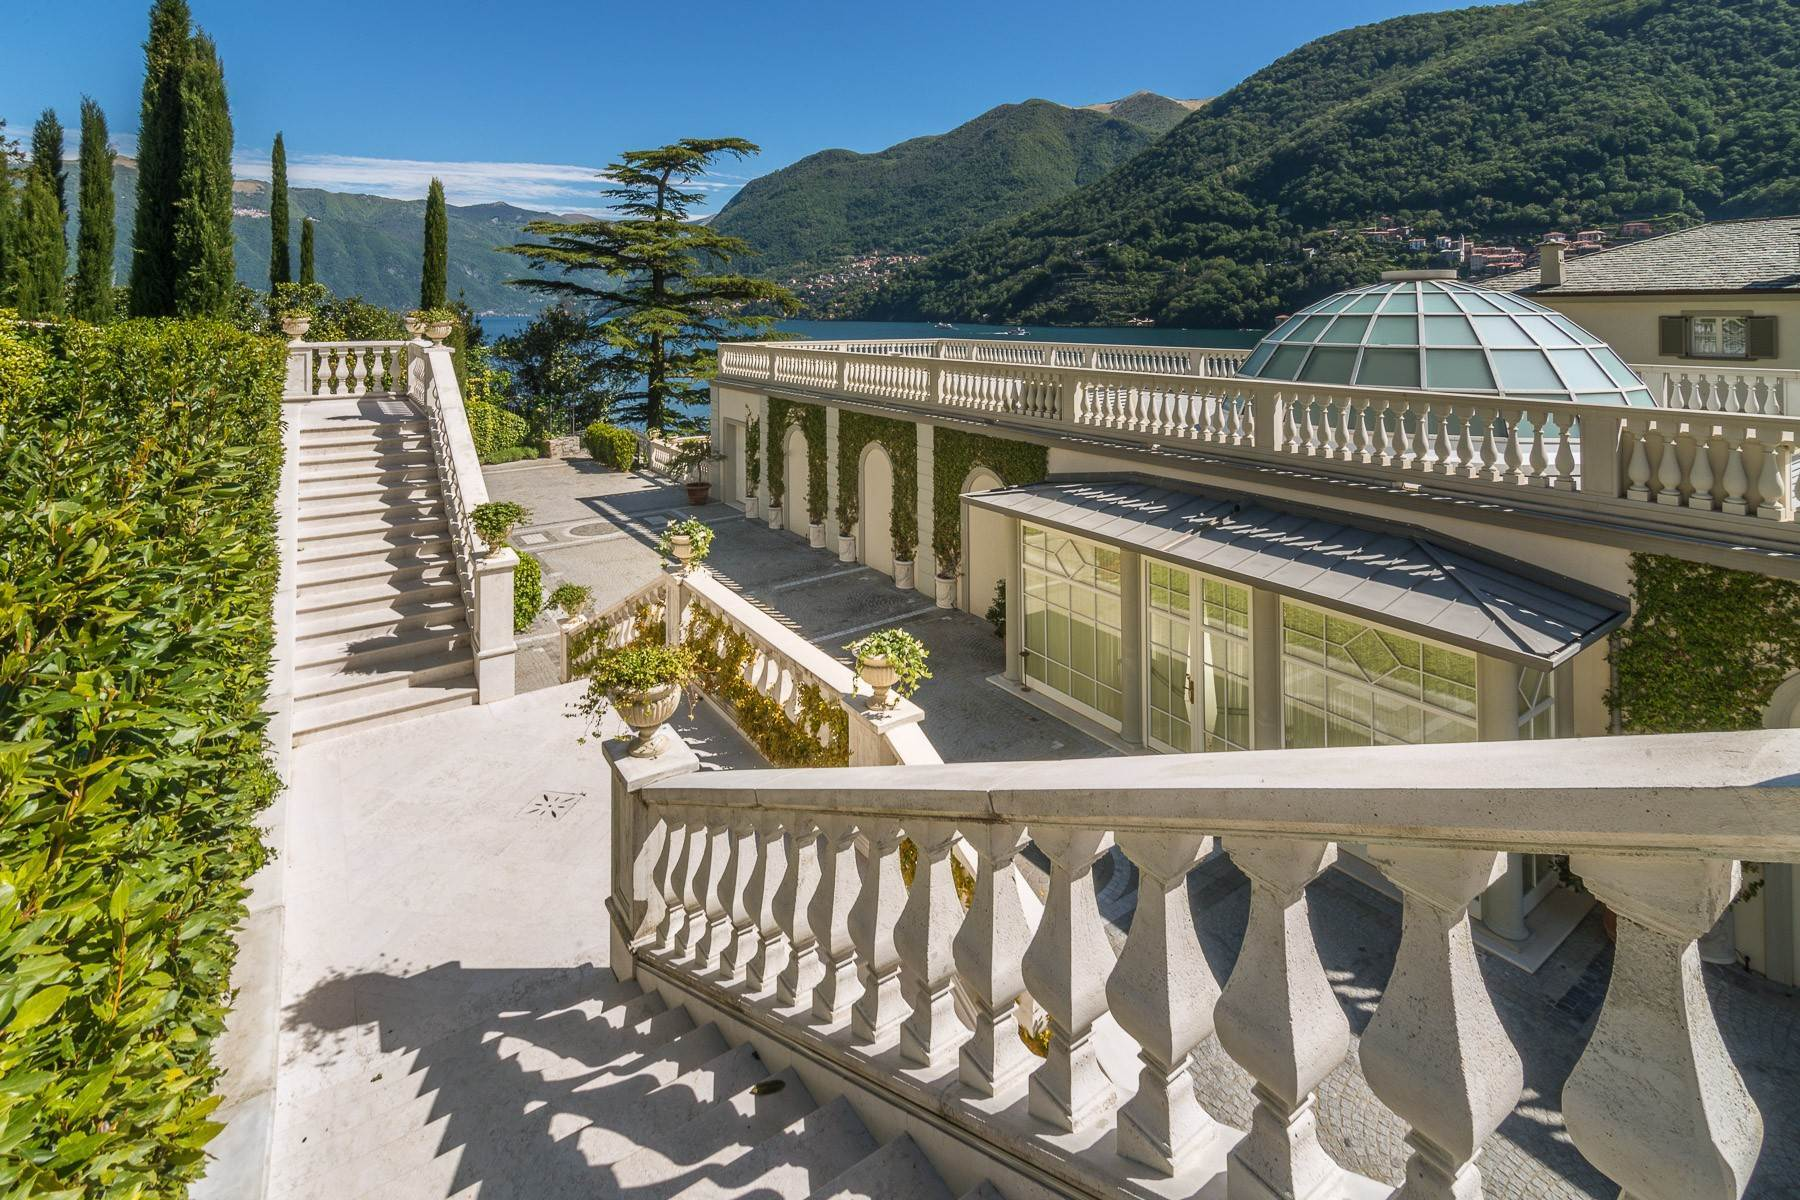 21. Other Residential Homes at Laglio, Como, Italy